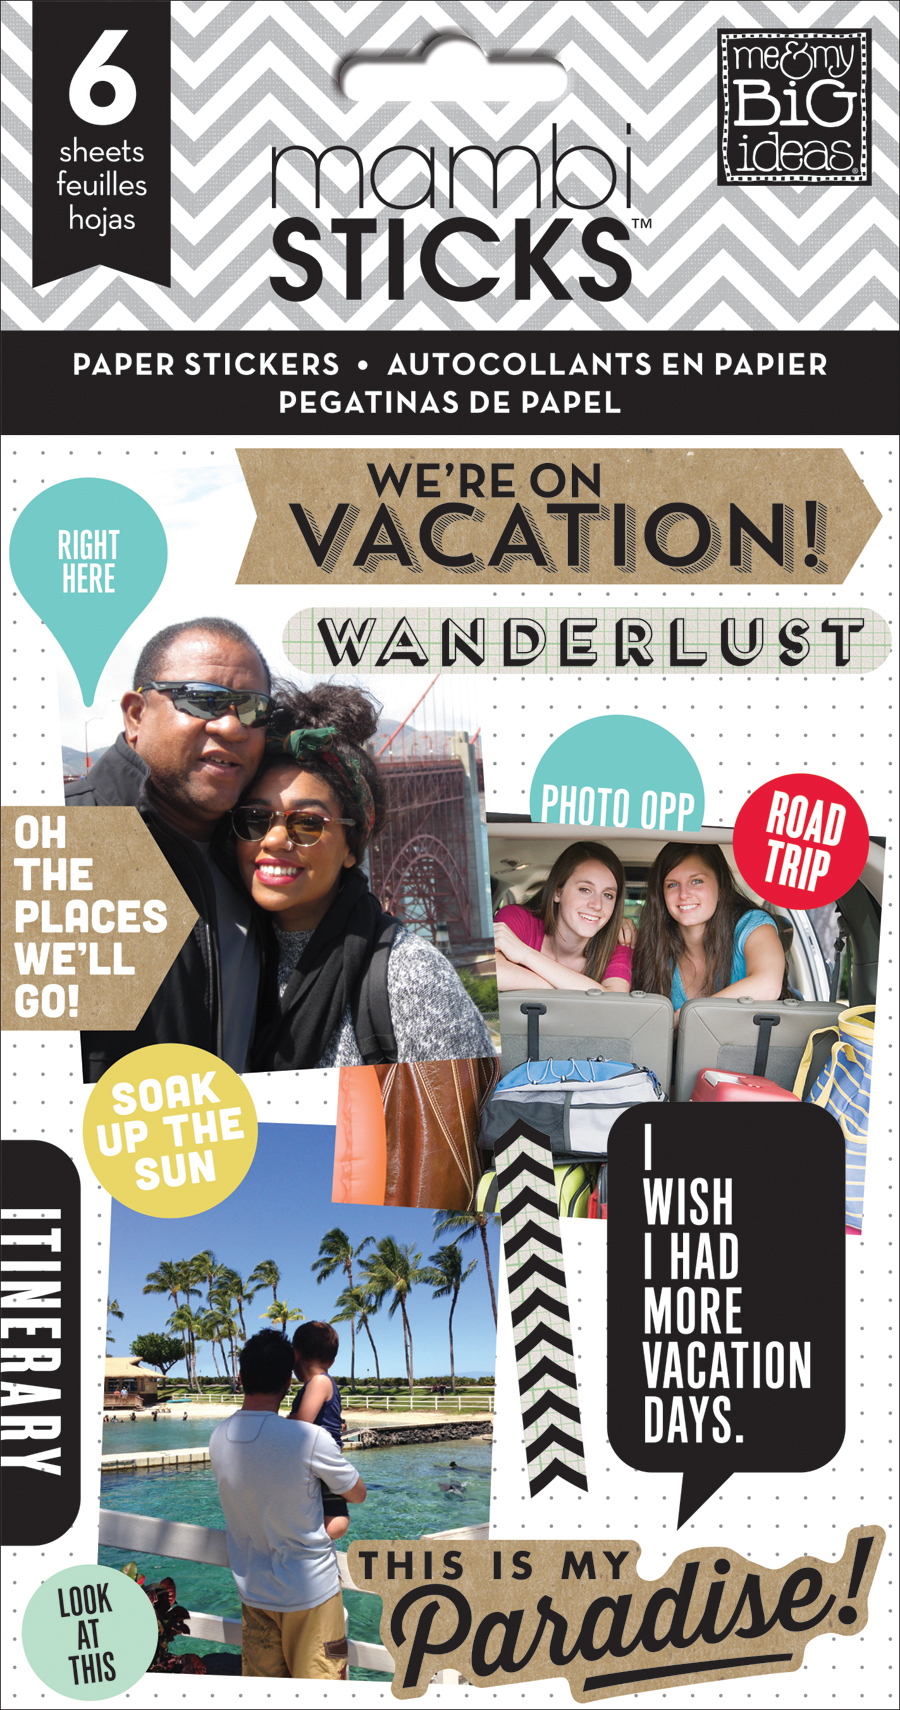 'We're On Vacation' POCKET PAGES™ mambiSTICKS stickers | me & my BIG ideas.jpg